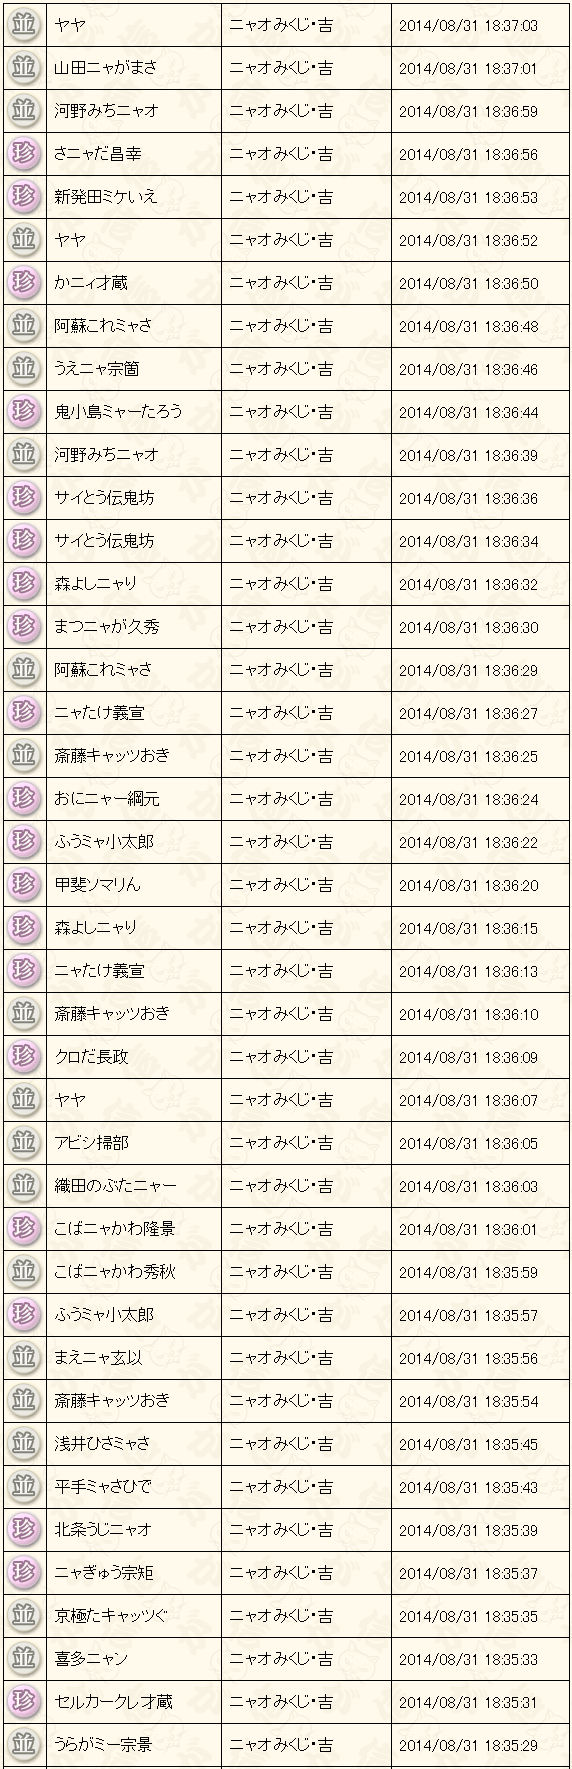 20140831183830cdd.png